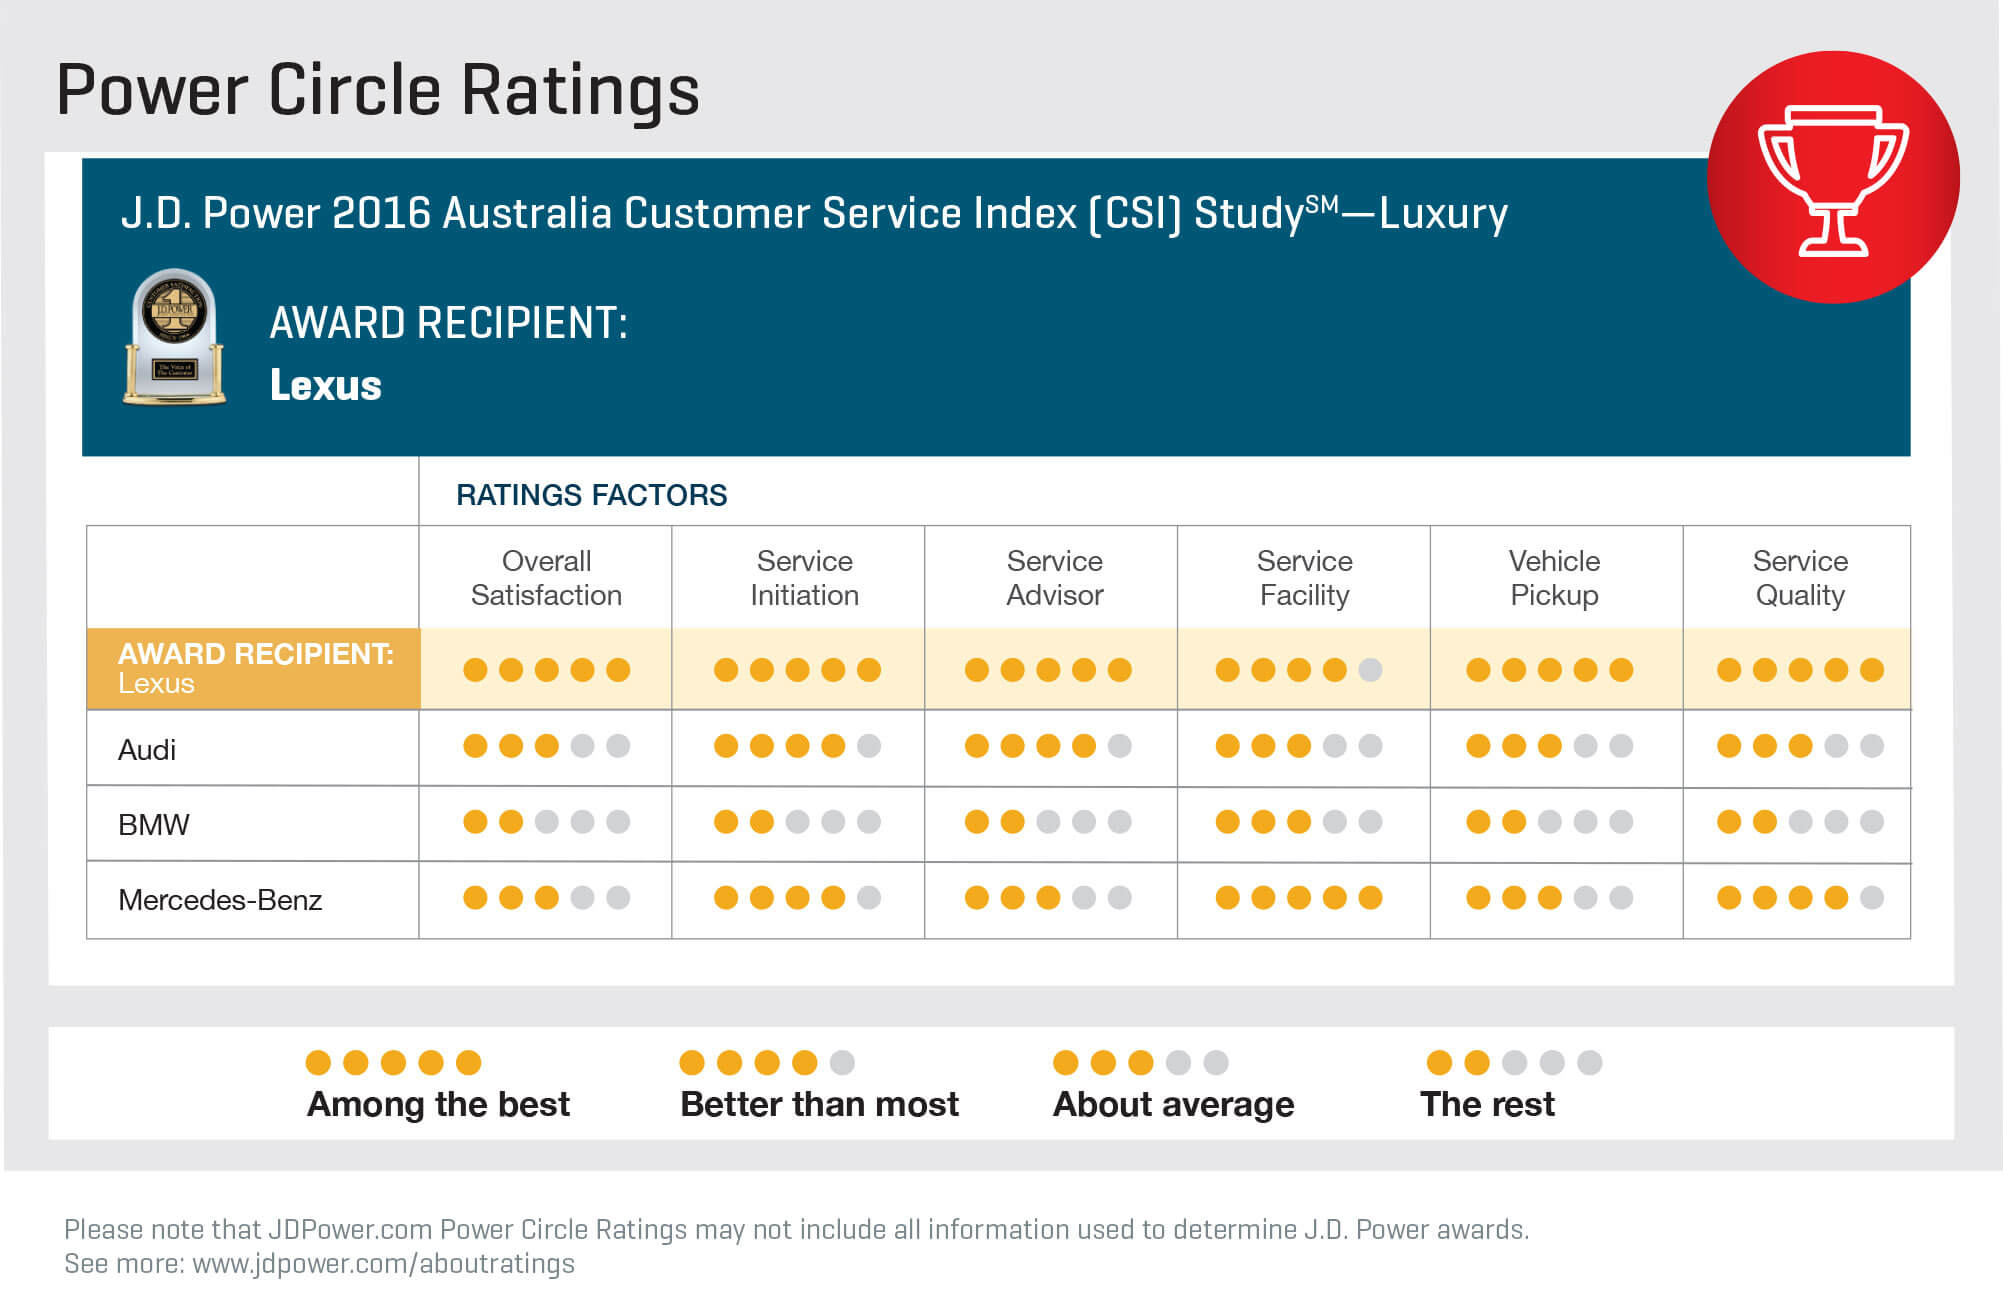 Power Circle Ratings - Click to enlarge